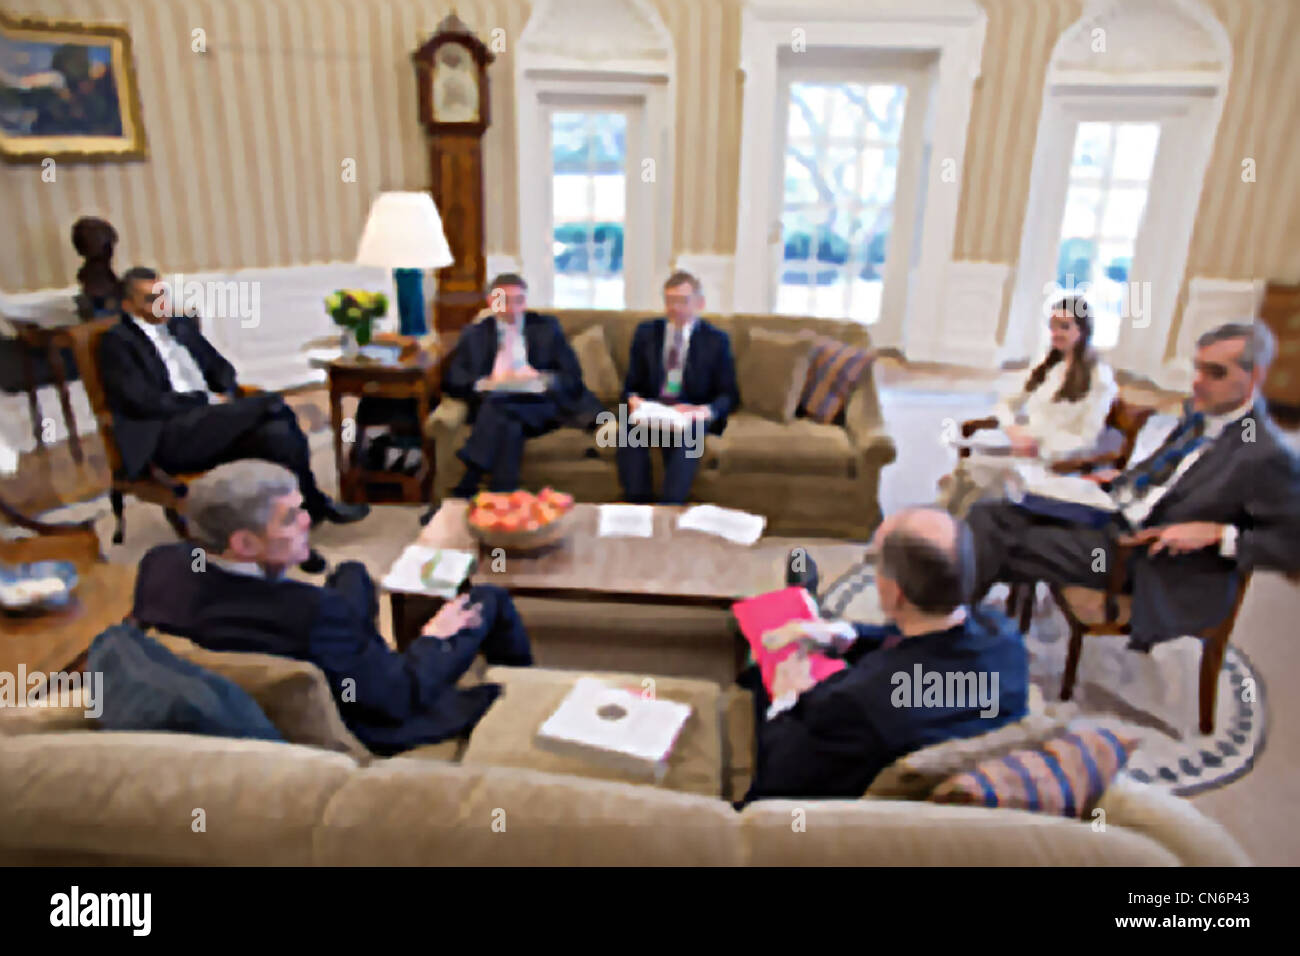 President Barack Obama meets with National Security staff in the Oval Office March 8, 2012 in Washington, DC. - Stock Image